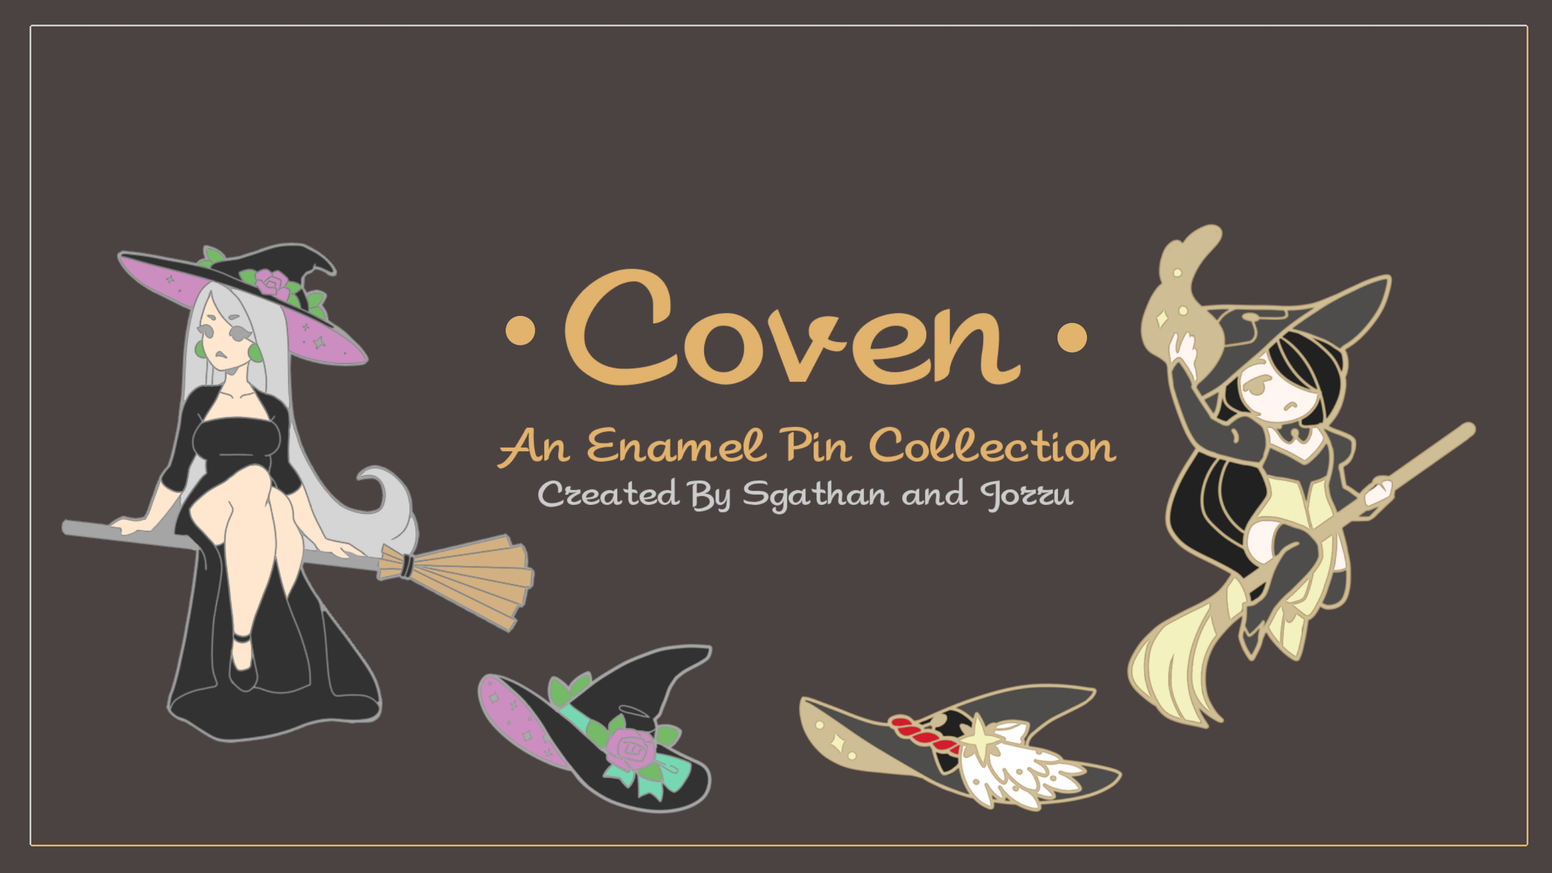 Coven A Witch Pin Collaboration By Nykki Gardner Kickstarter